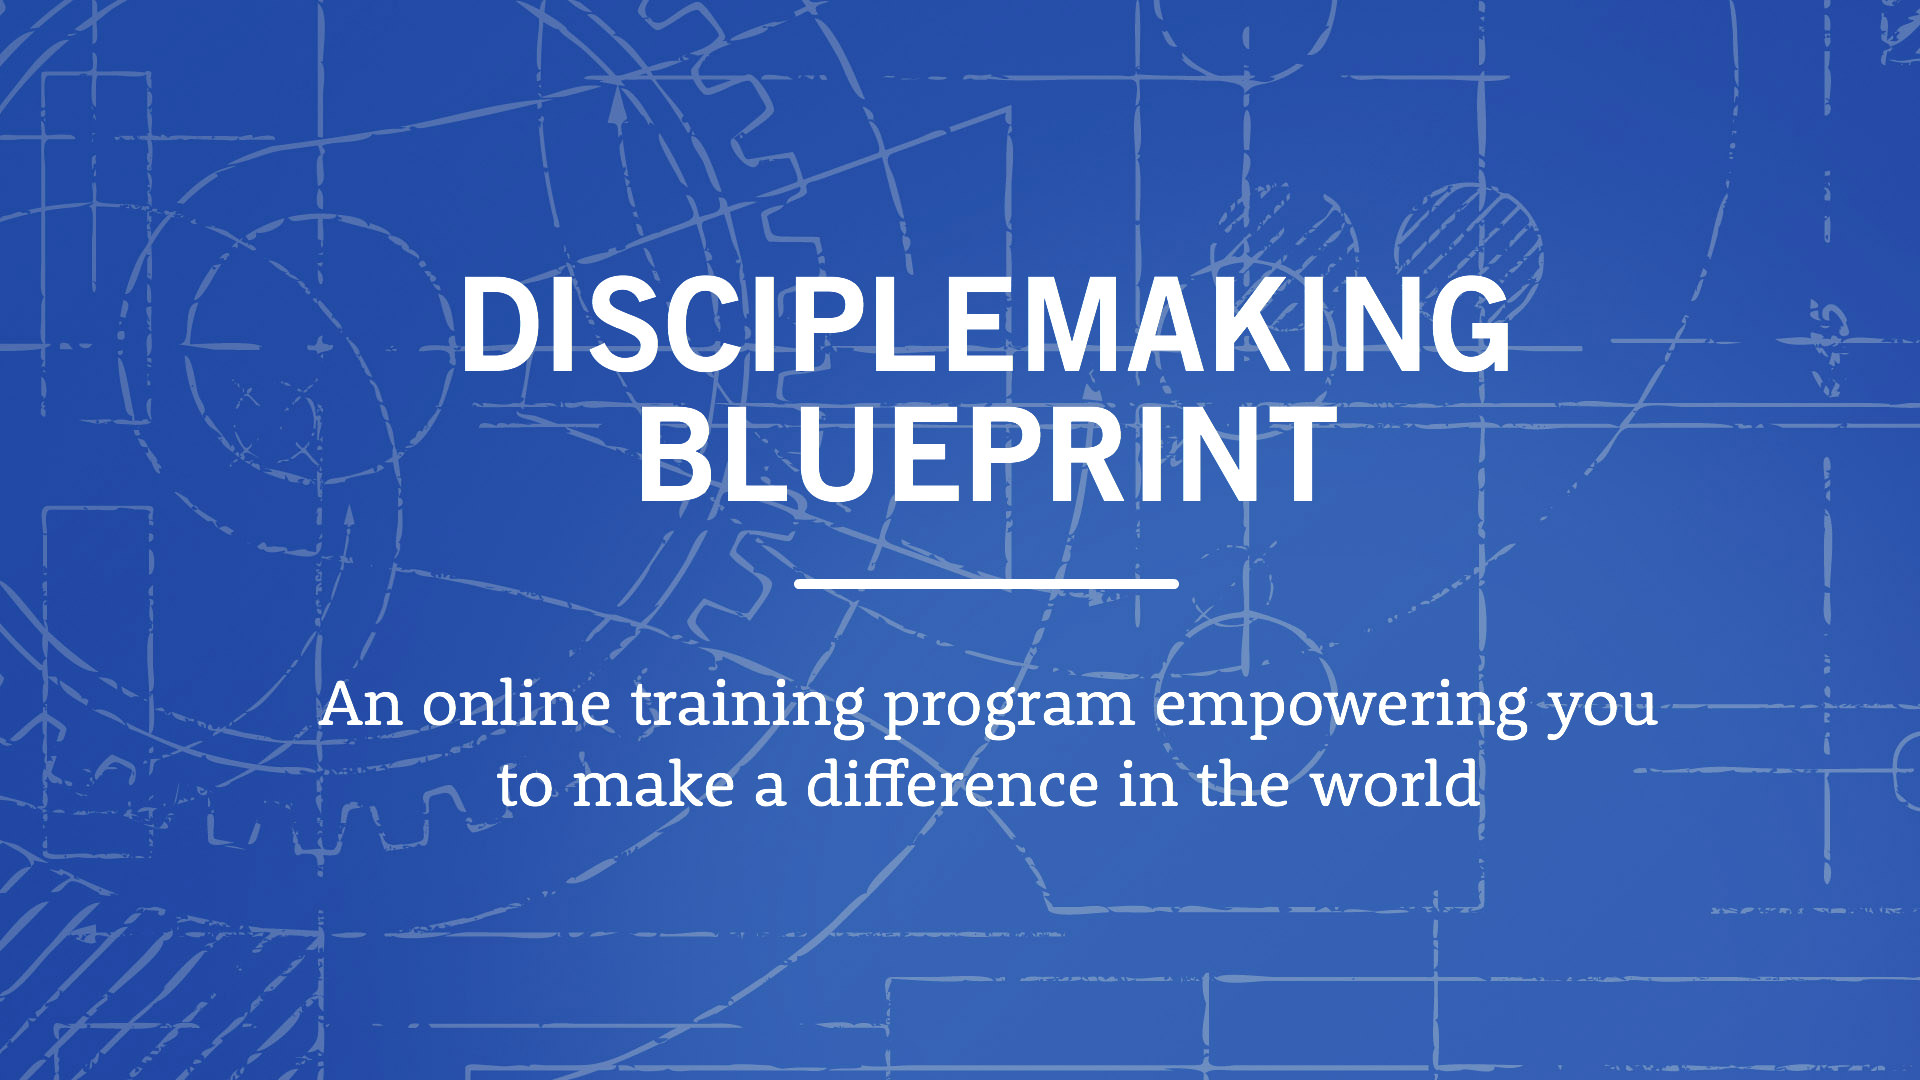 Your disciplemaking blueprint verge network malvernweather Gallery